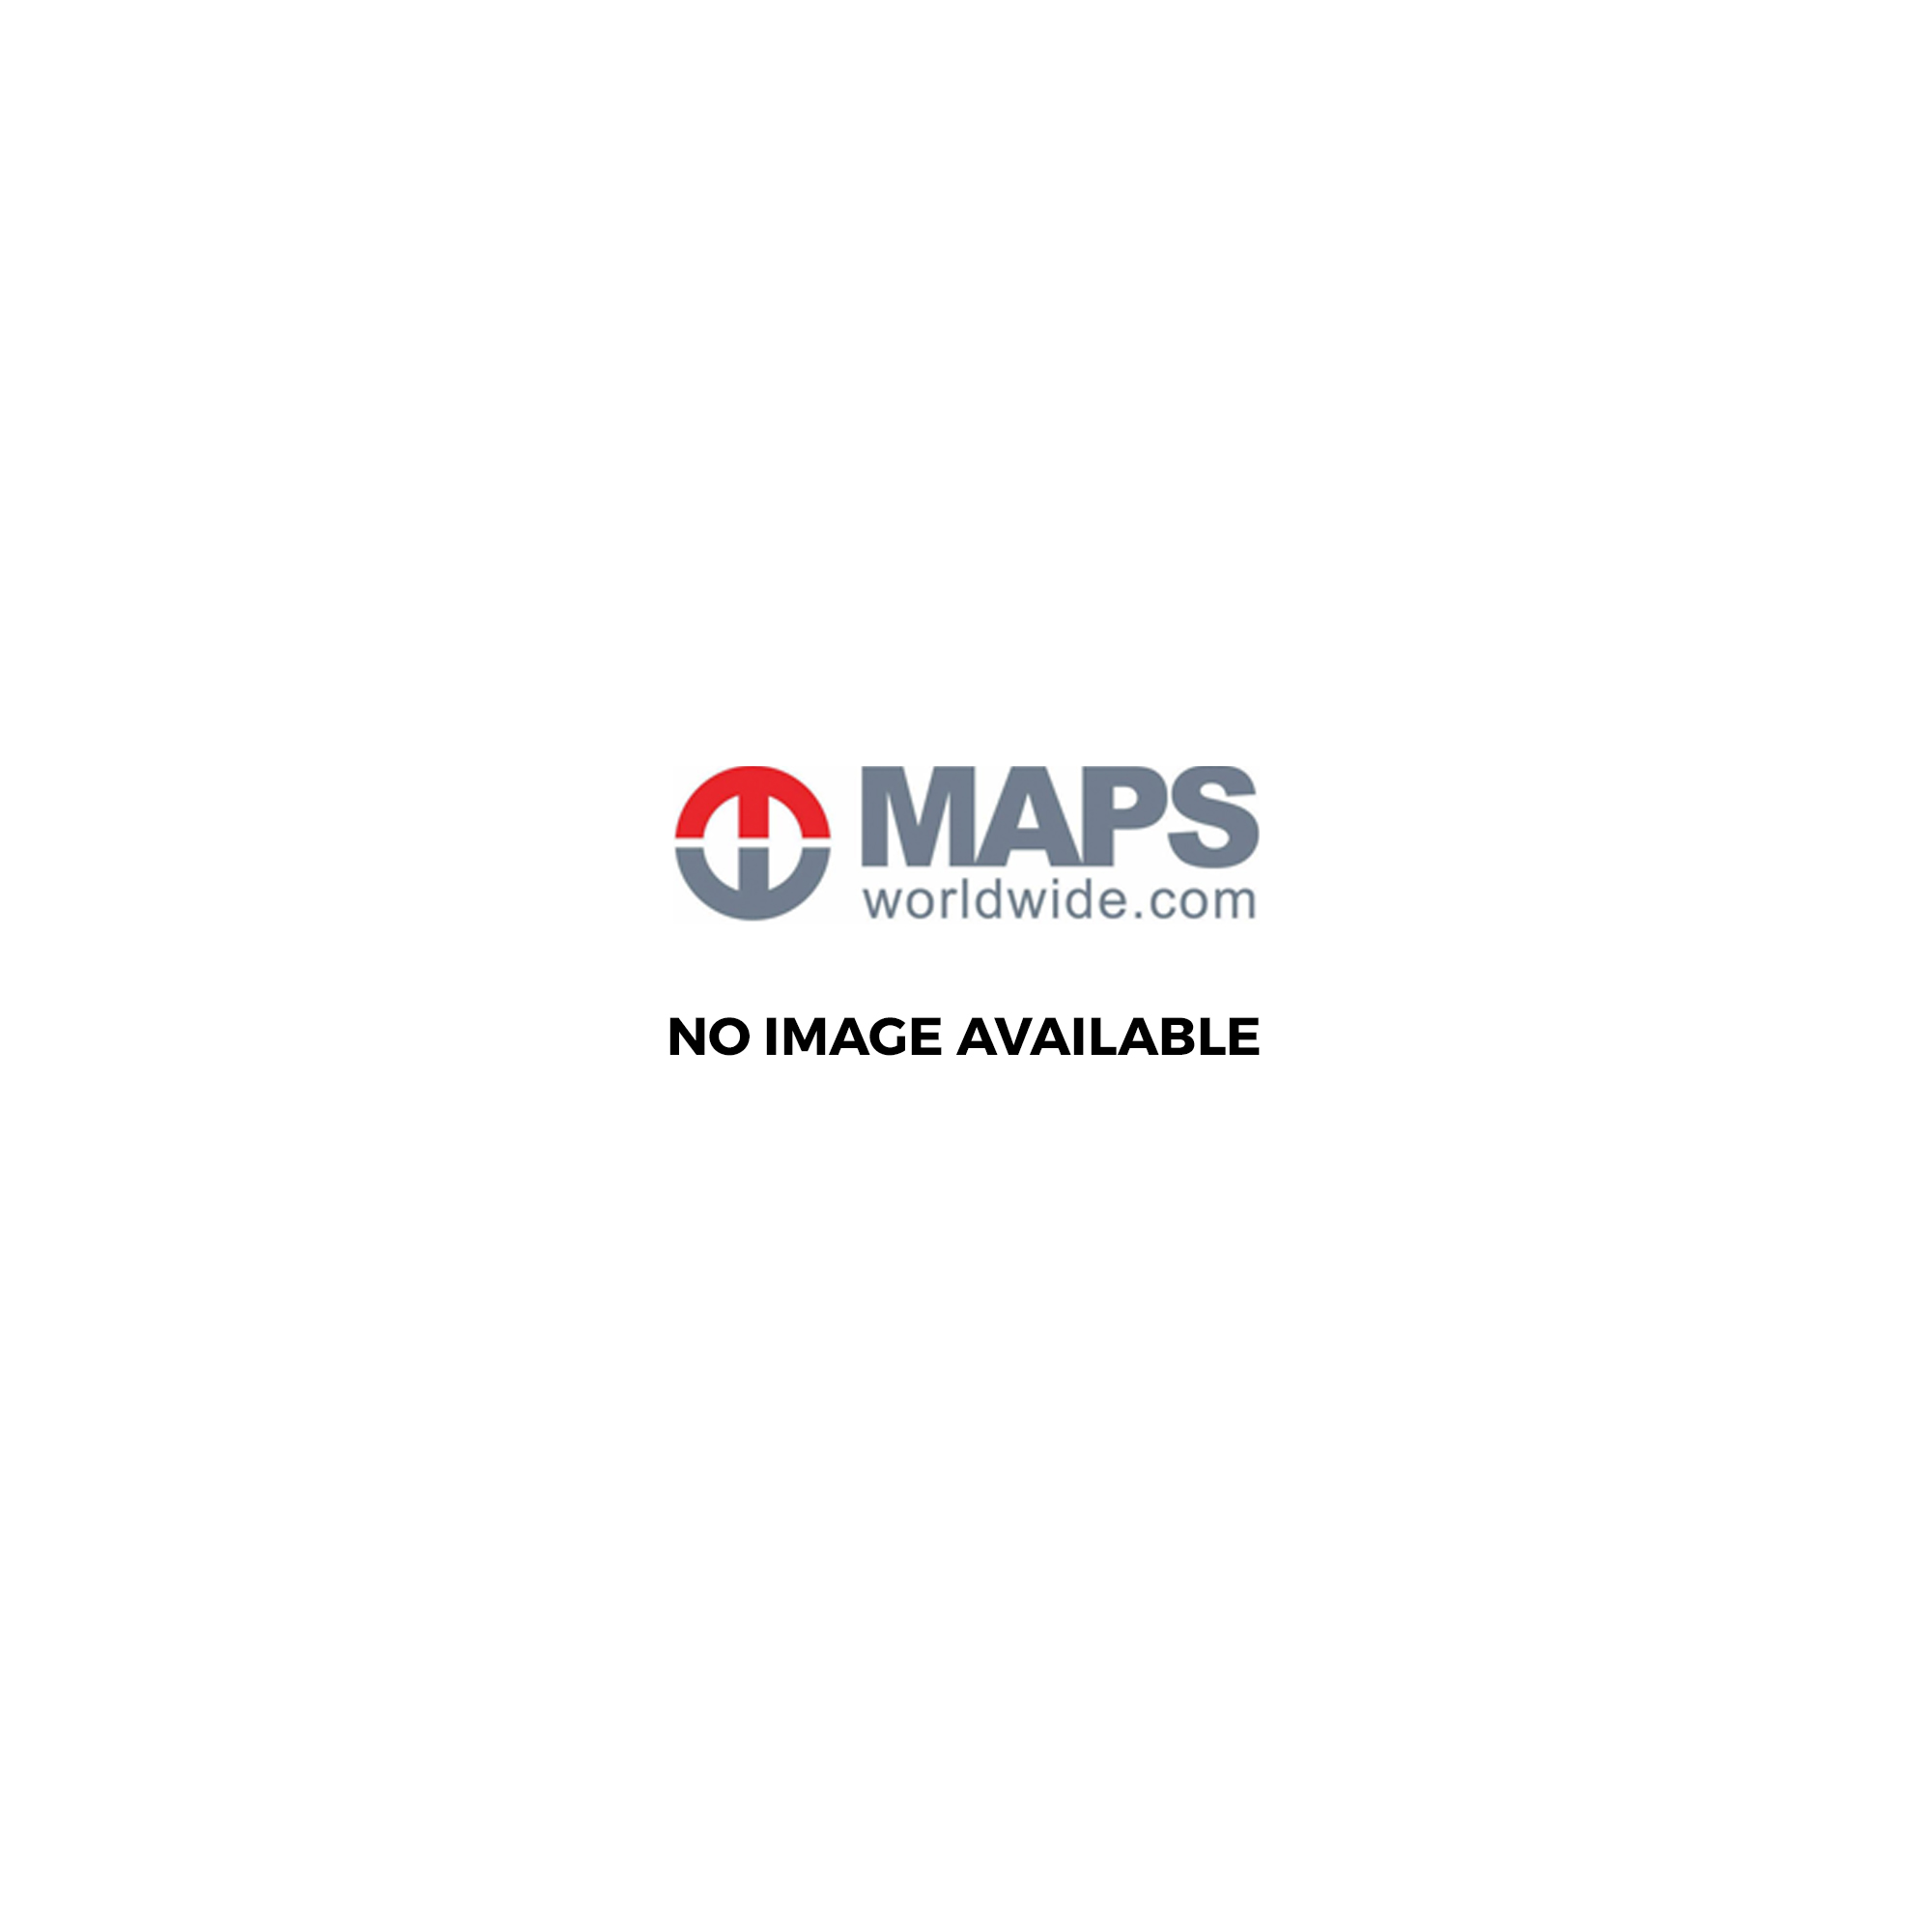 Michelin National Map 781: Baltic States